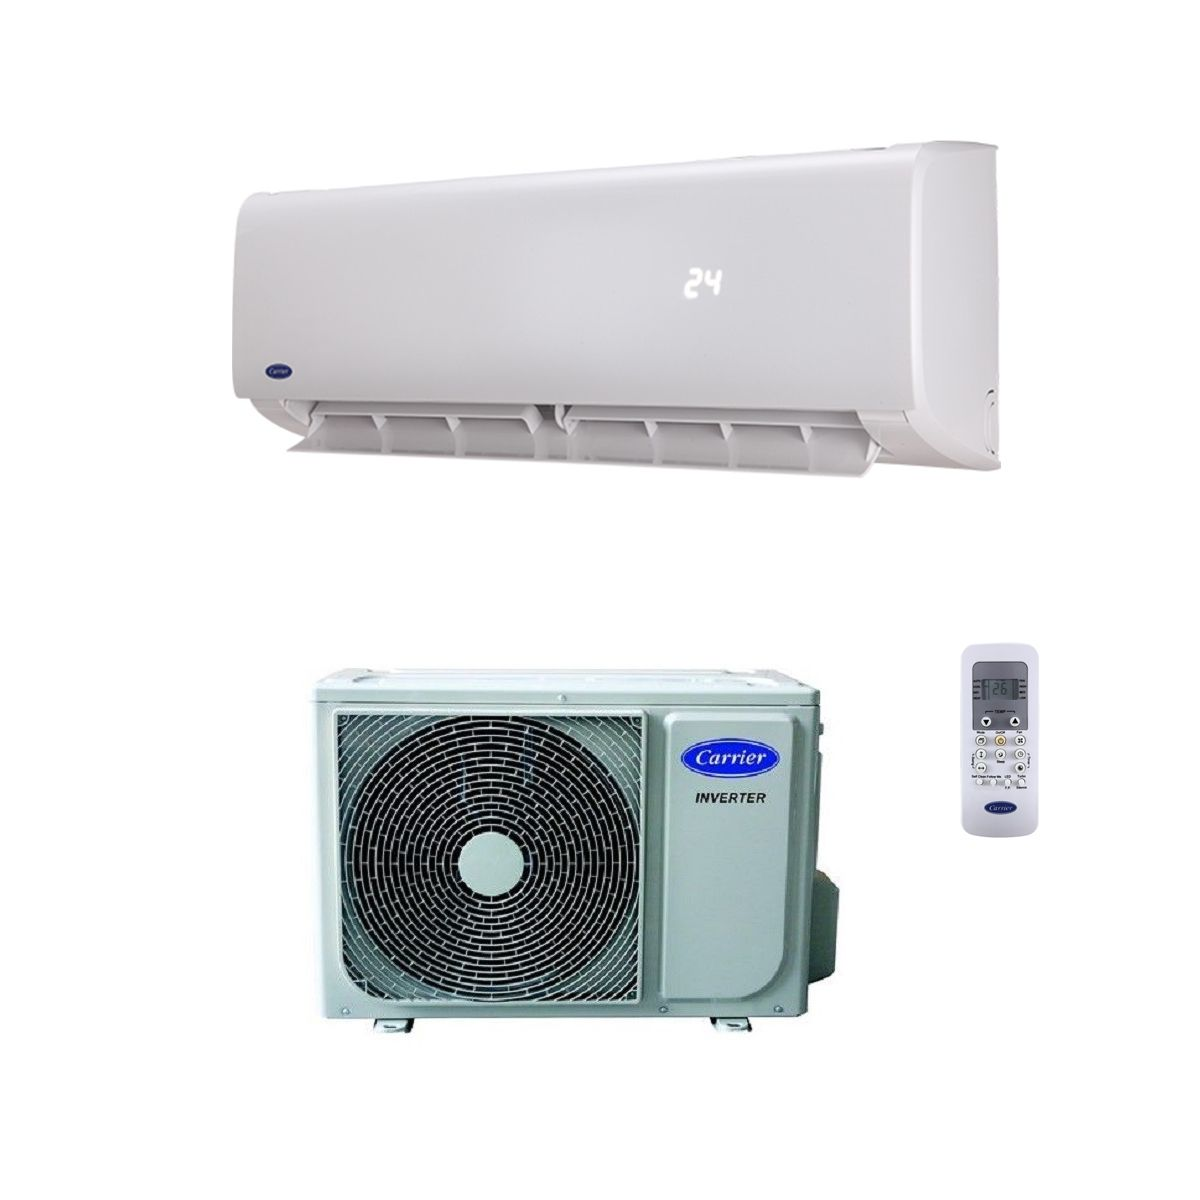 carrier air conditioning. carrier air conditioning wall mounted 42qhc012ds (3.5kw / 12000btu) heating and cooling with remote control 240v~50hz/60hz